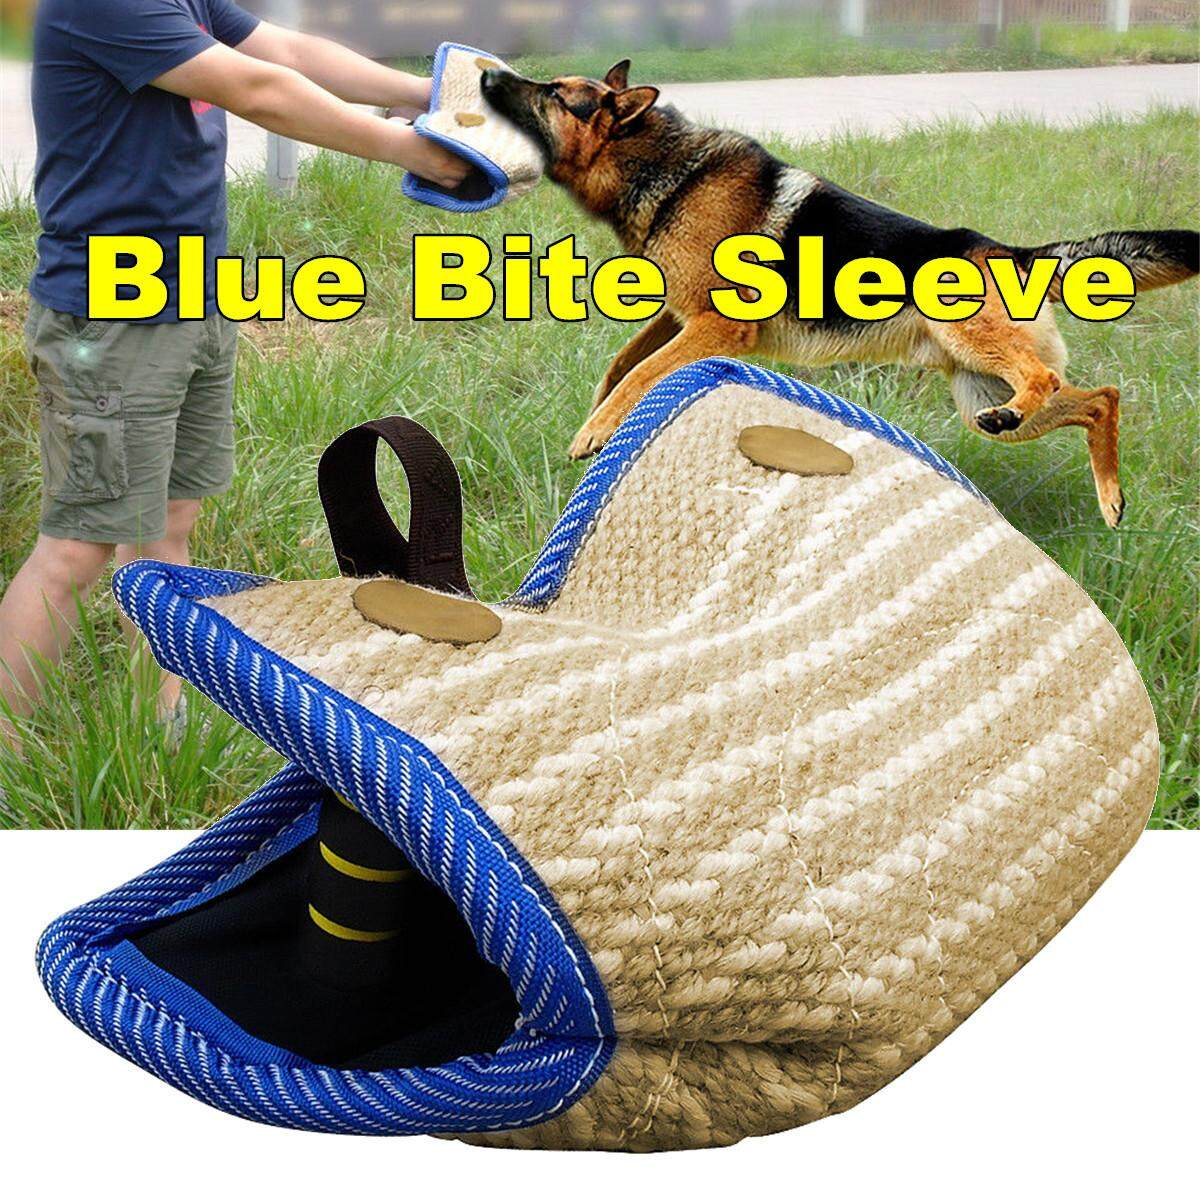 Large Dogs Training Jute Dog Bite Sleeve Tug For Police K9 German Shepherd Dog By Moonbeam.